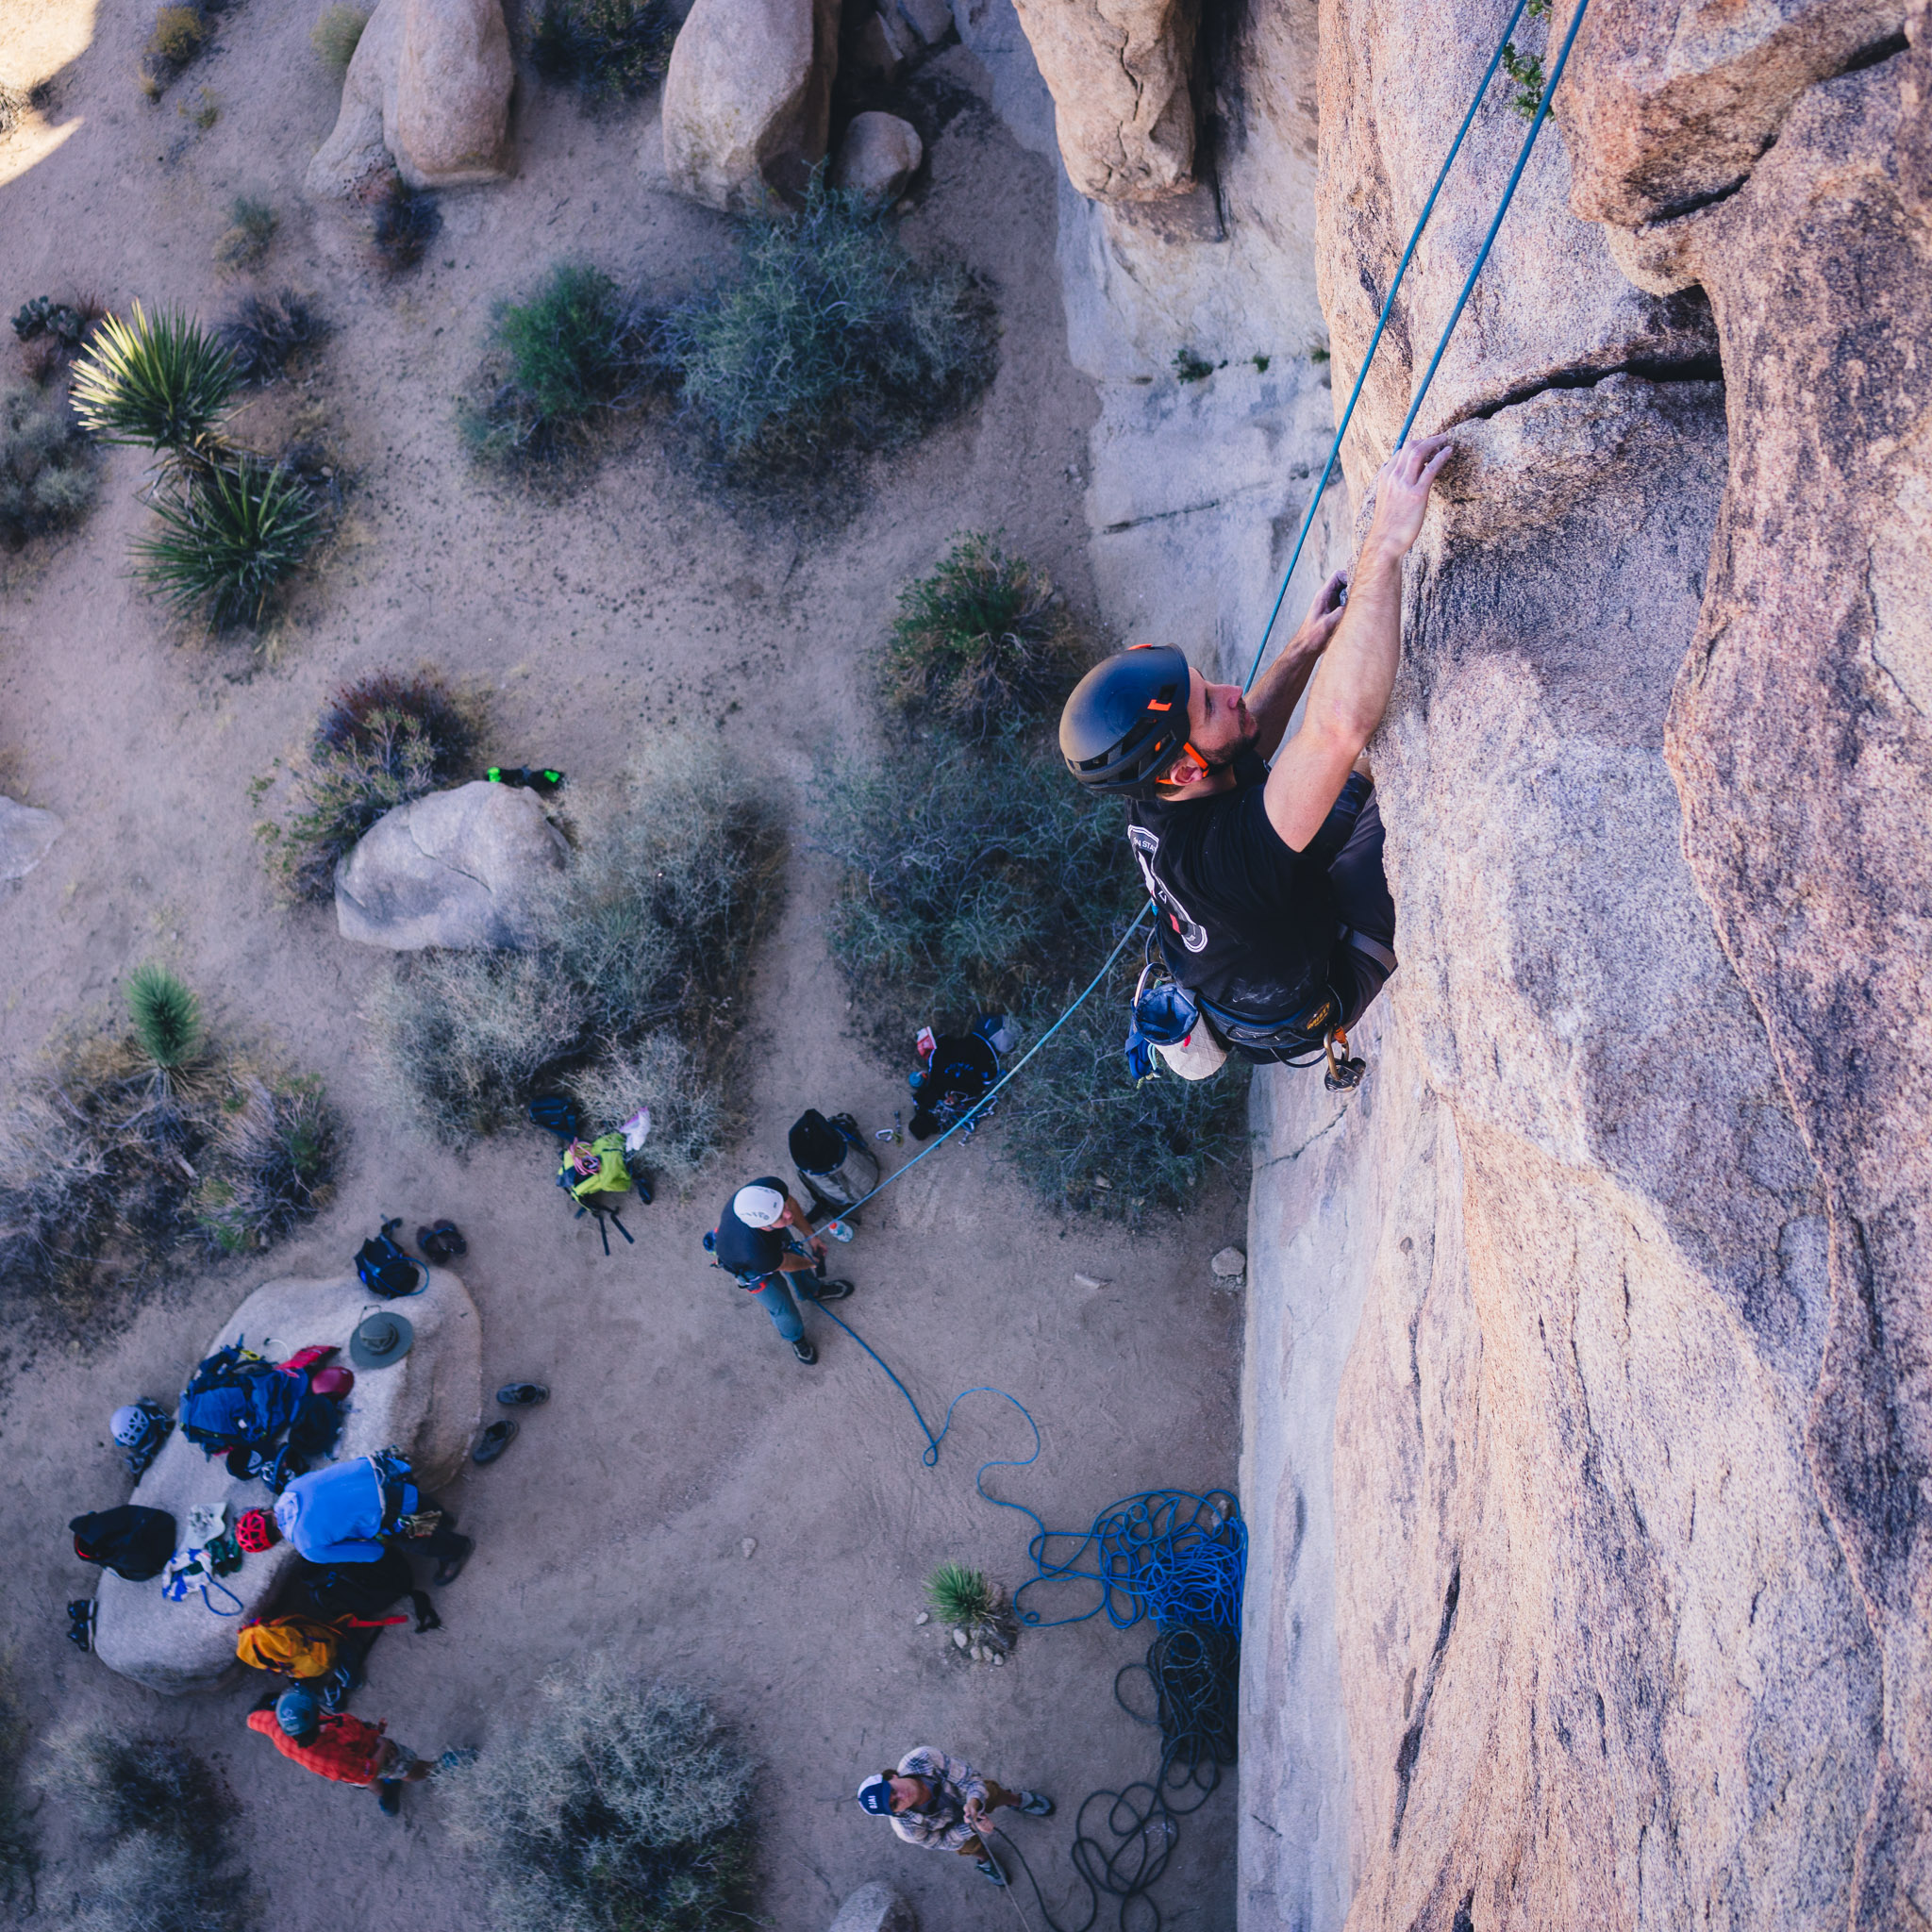 Joshua Tree Rock Climbing Southern California